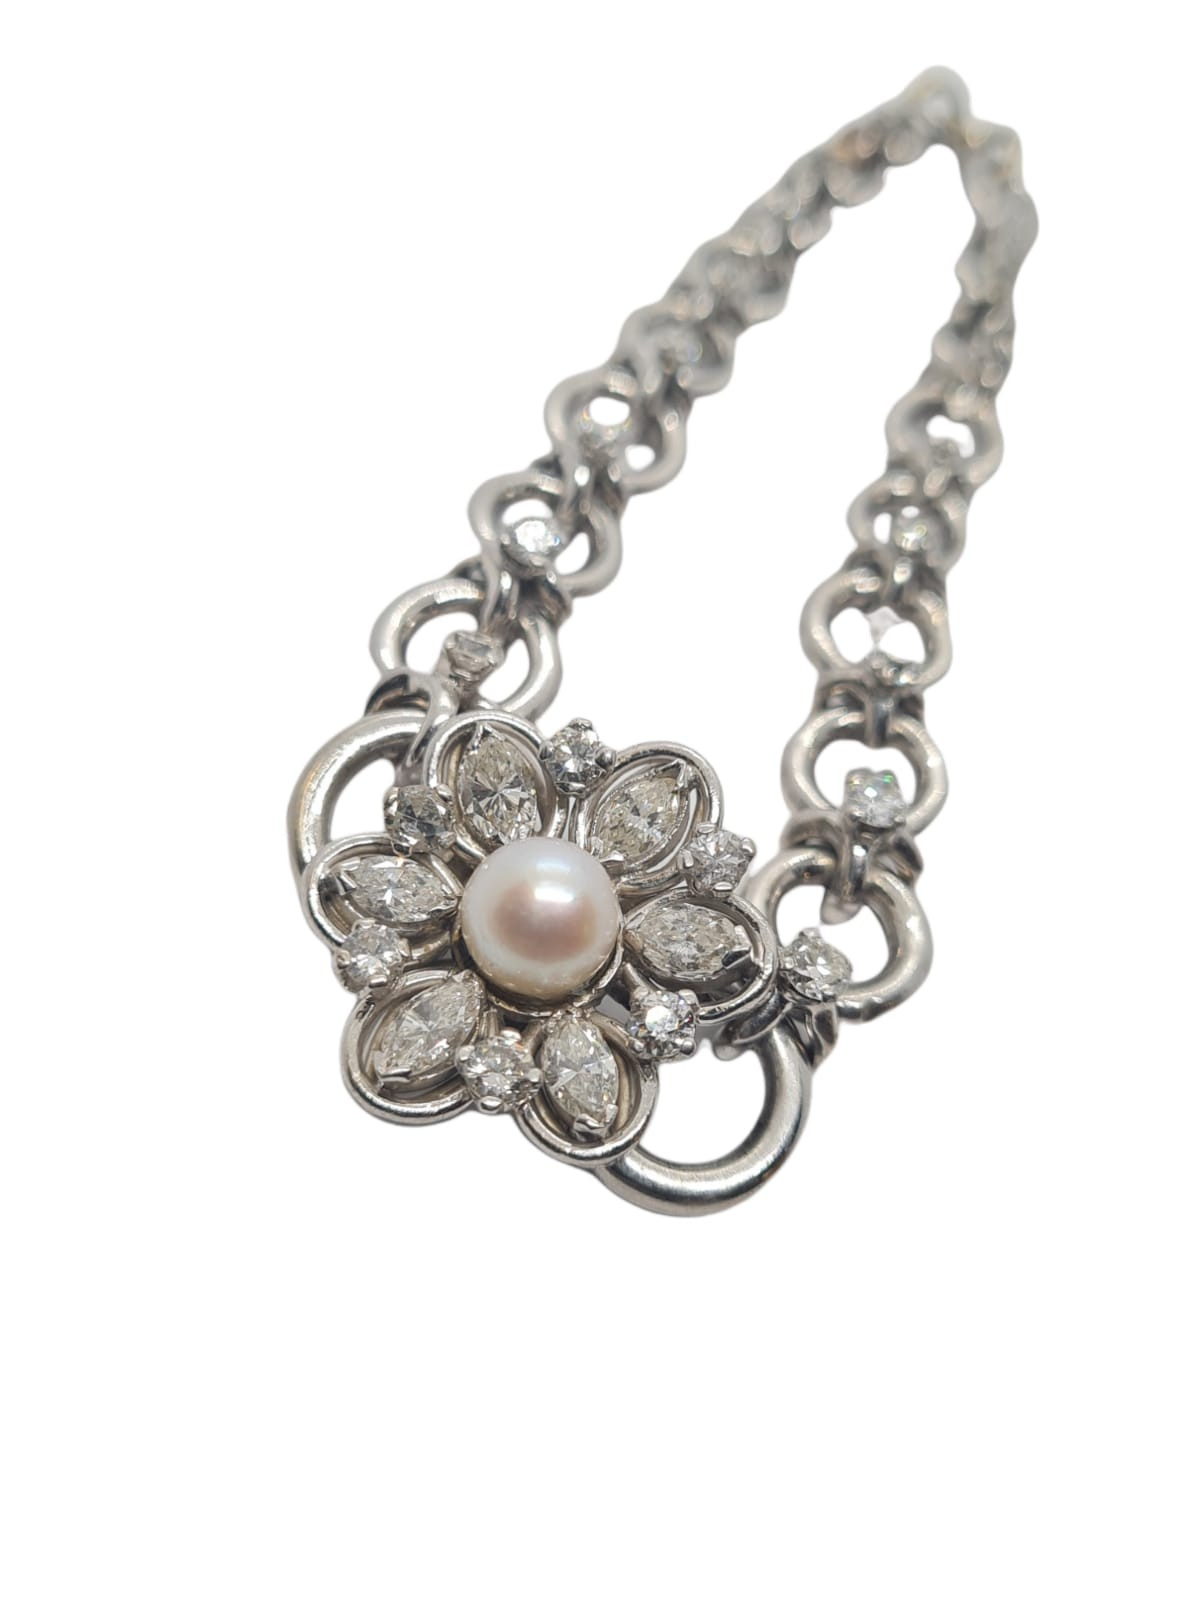 18k white gold French antique diamond and pearl set bracelet, flower design, weight 18.5g approx 2ct - Image 2 of 5